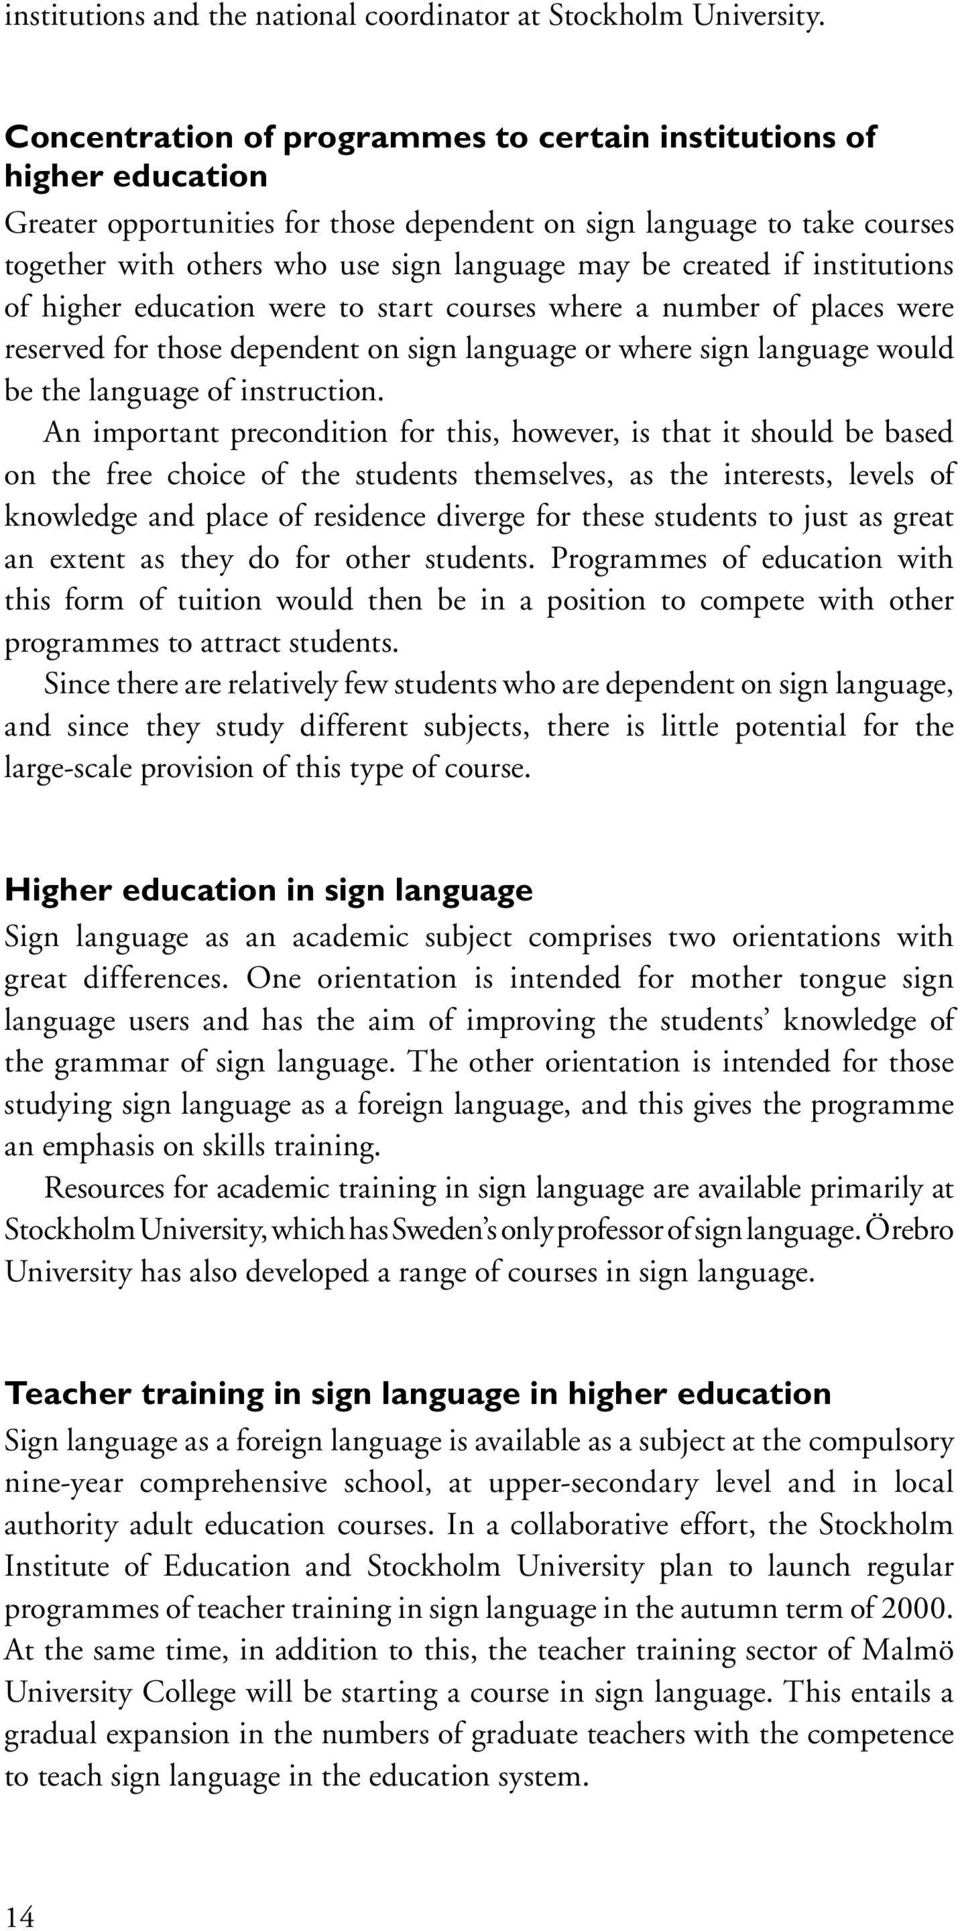 created if institutions of higher education were to start courses where a number of places were reserved for those dependent on sign language or where sign language would be the language of